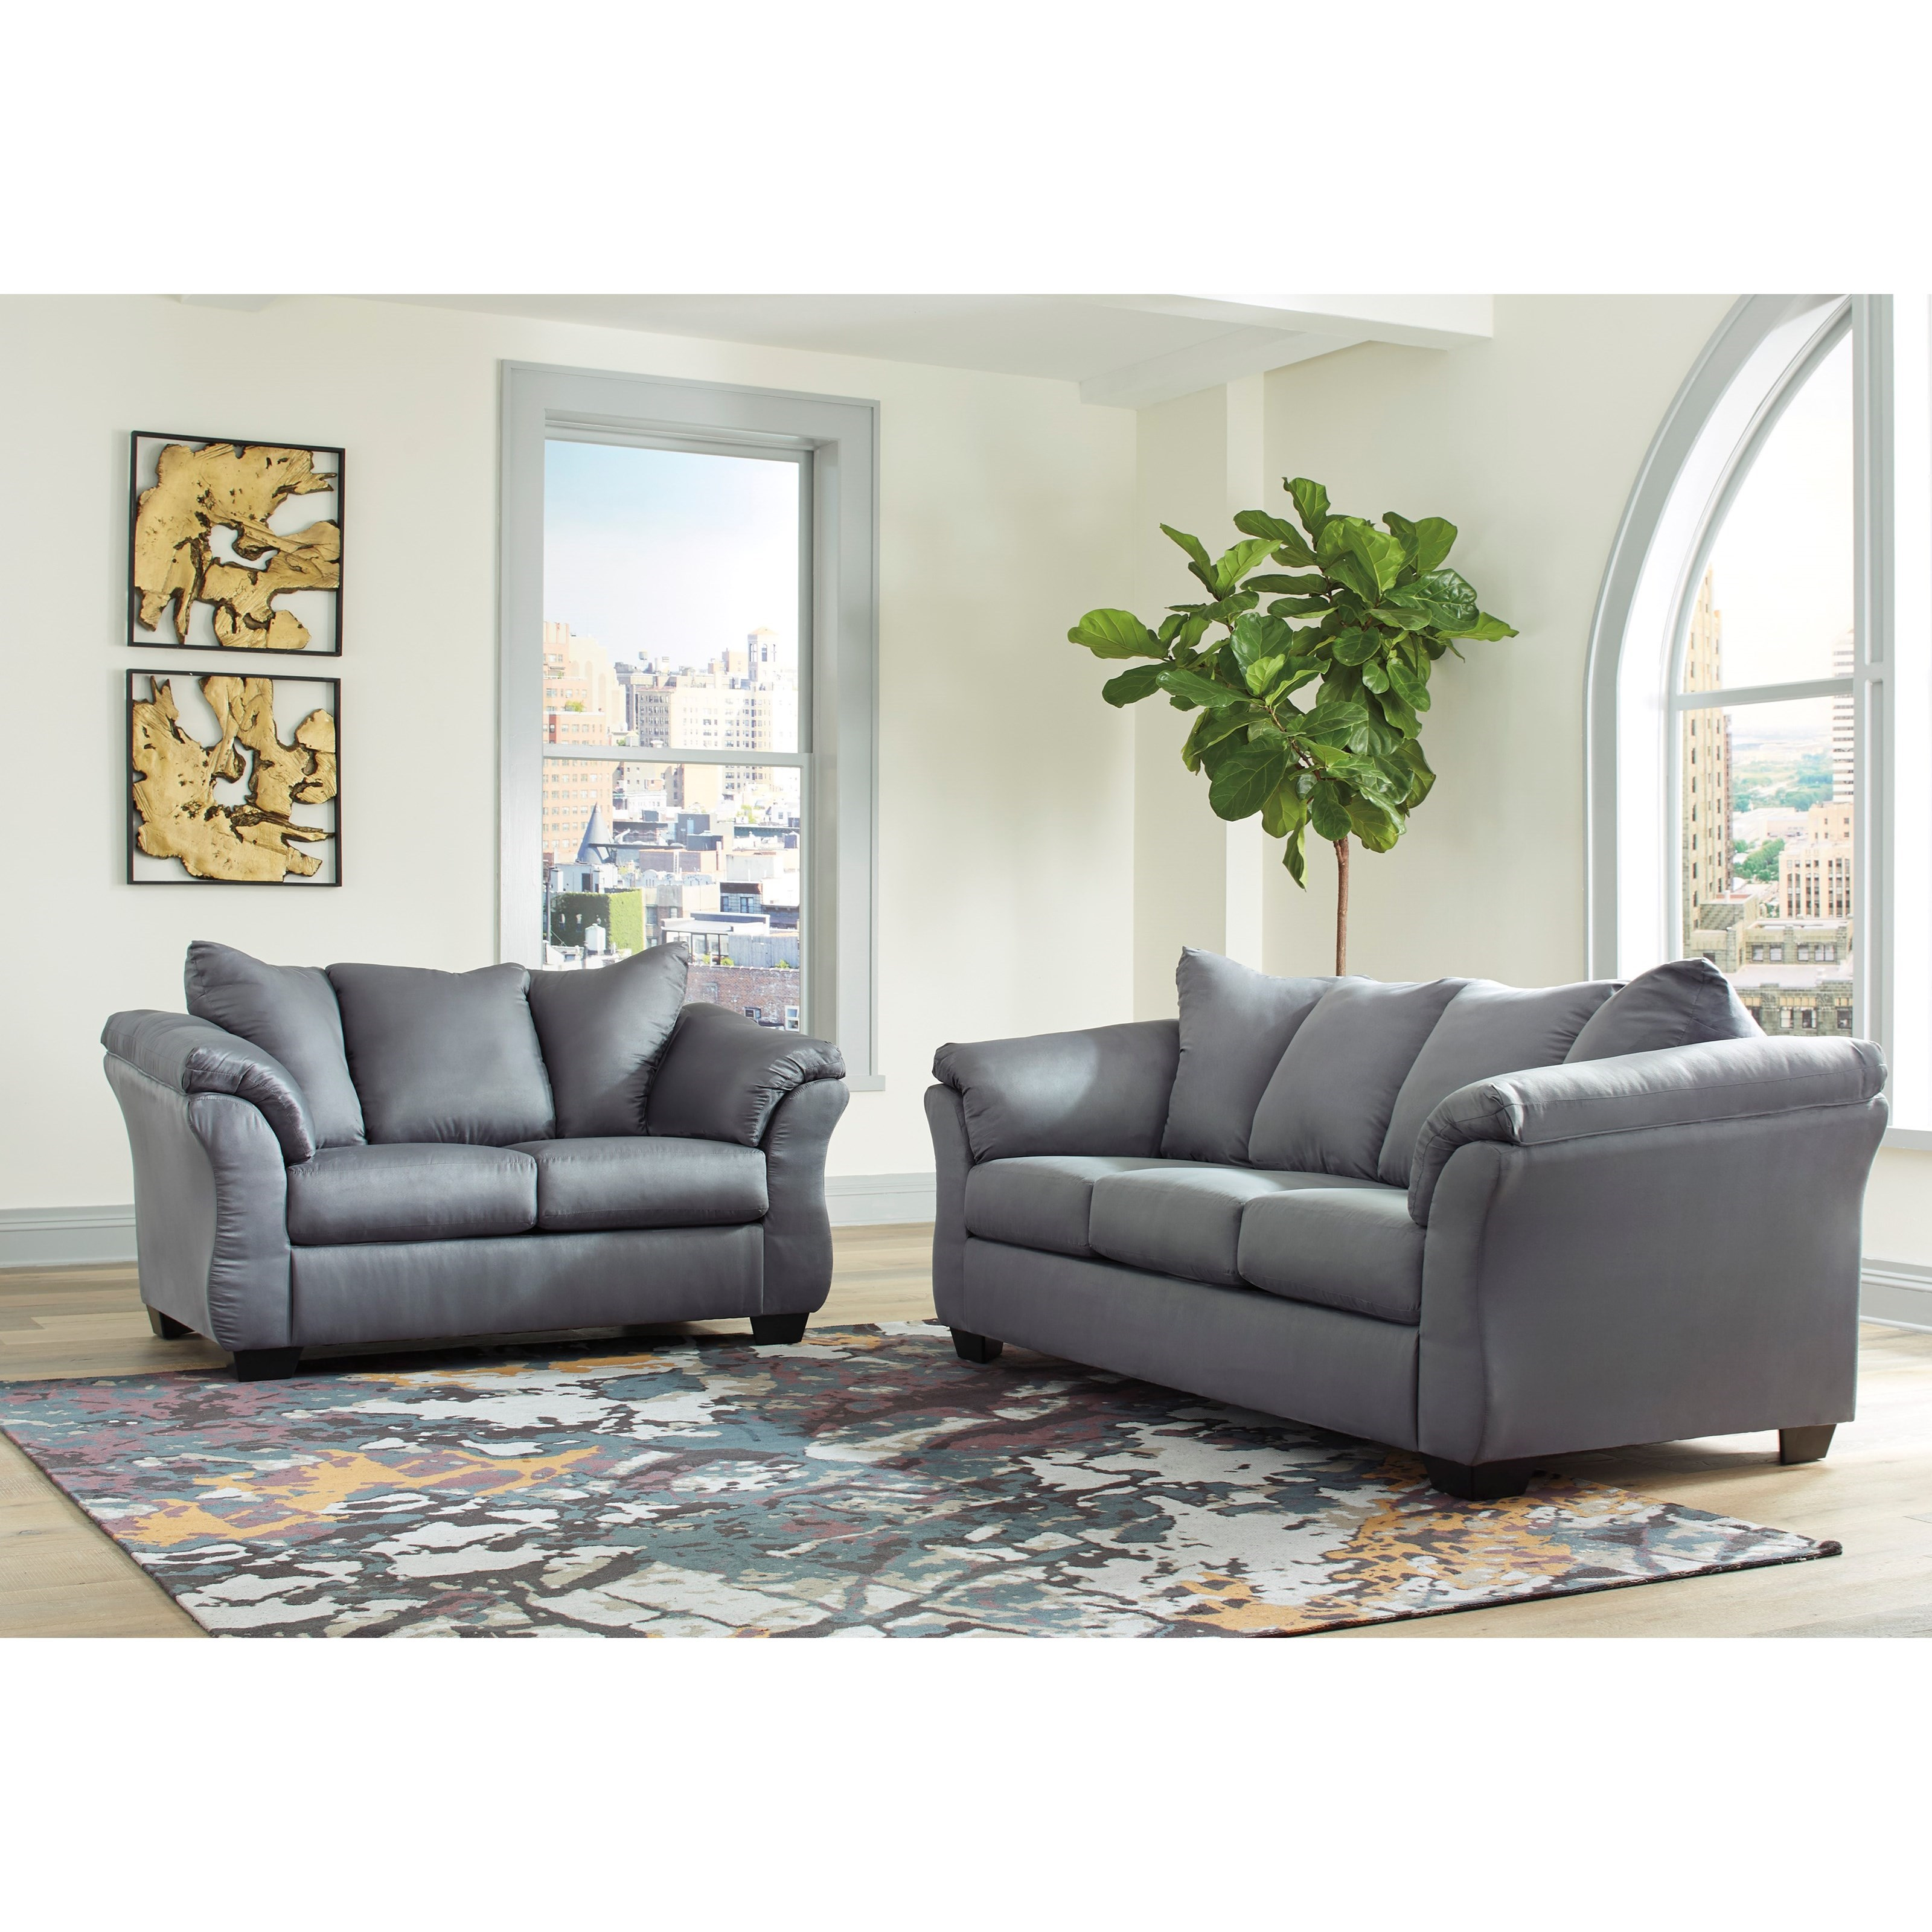 Darcy - Steel Stationary Living Room Group by Signature Design by Ashley at Furniture Barn